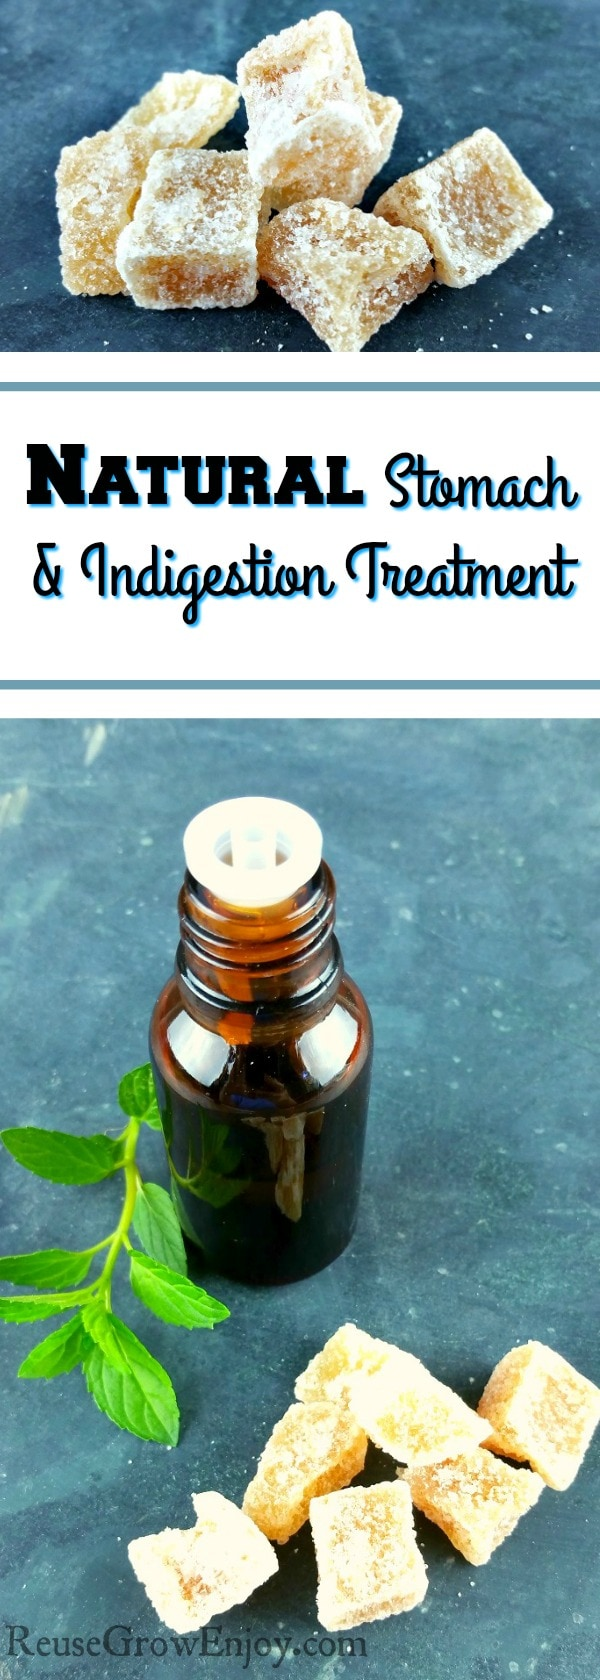 Do you have a go to indigestion treatment that you use? There are so many natural options available but I am going to share my two go to items that WORK!